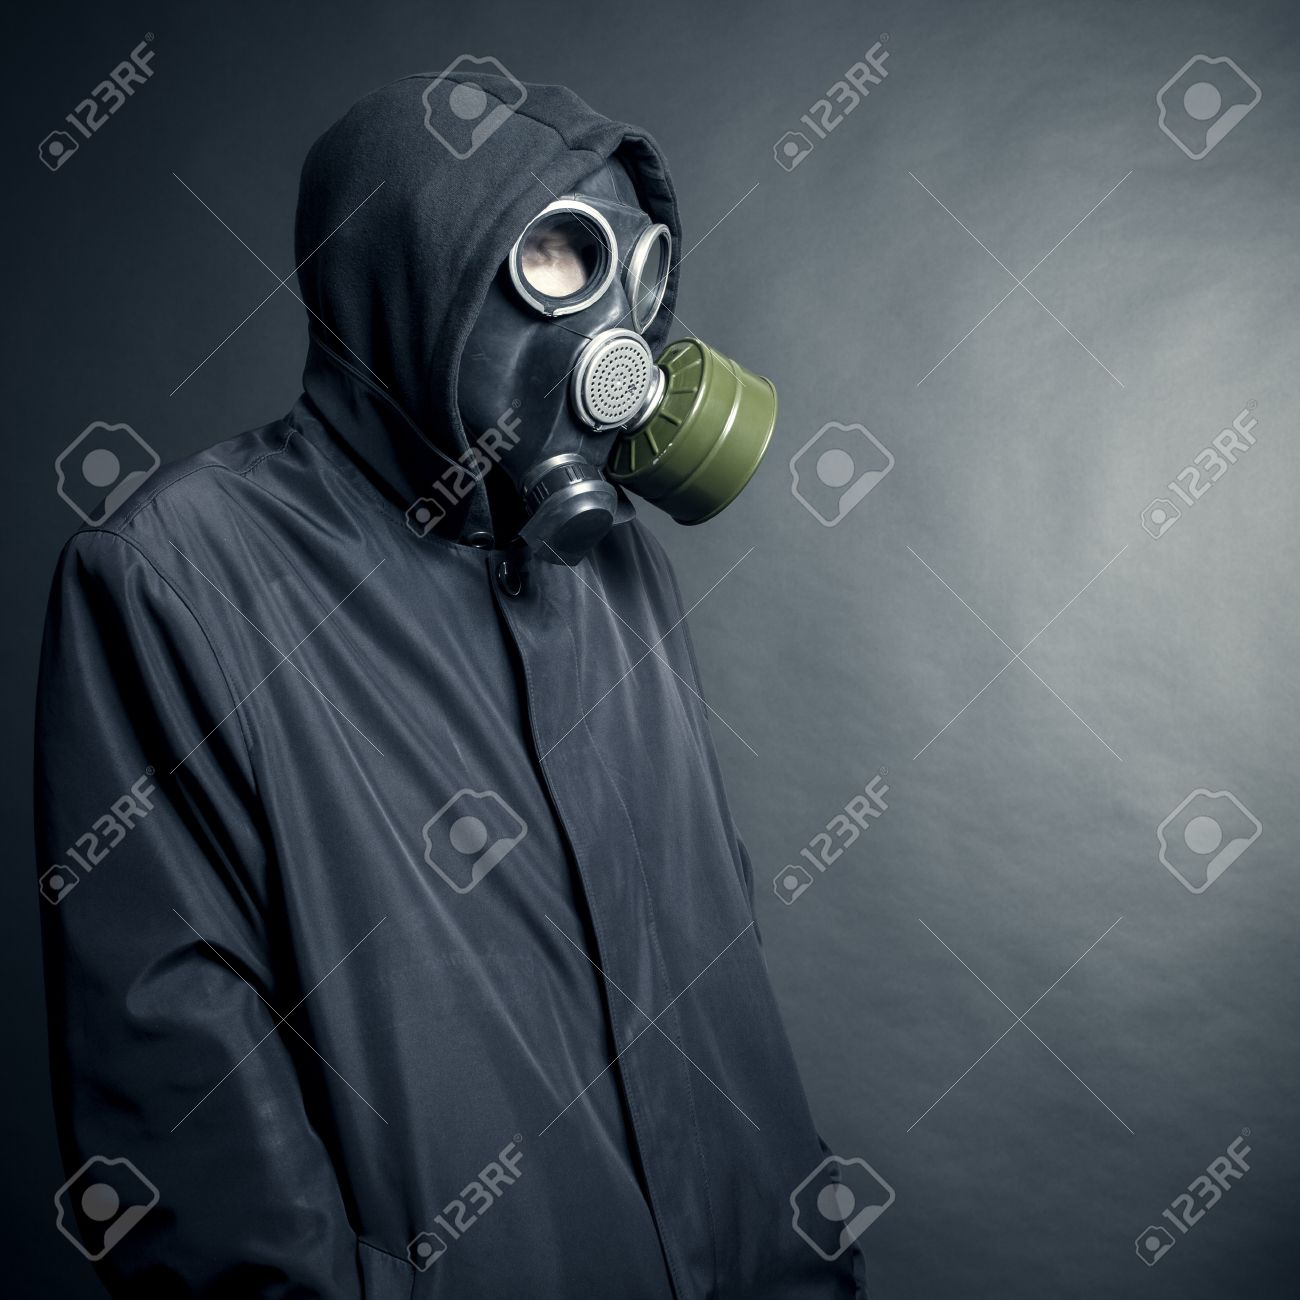 A man in a gas mask on a black background Stock Photo - 15912465